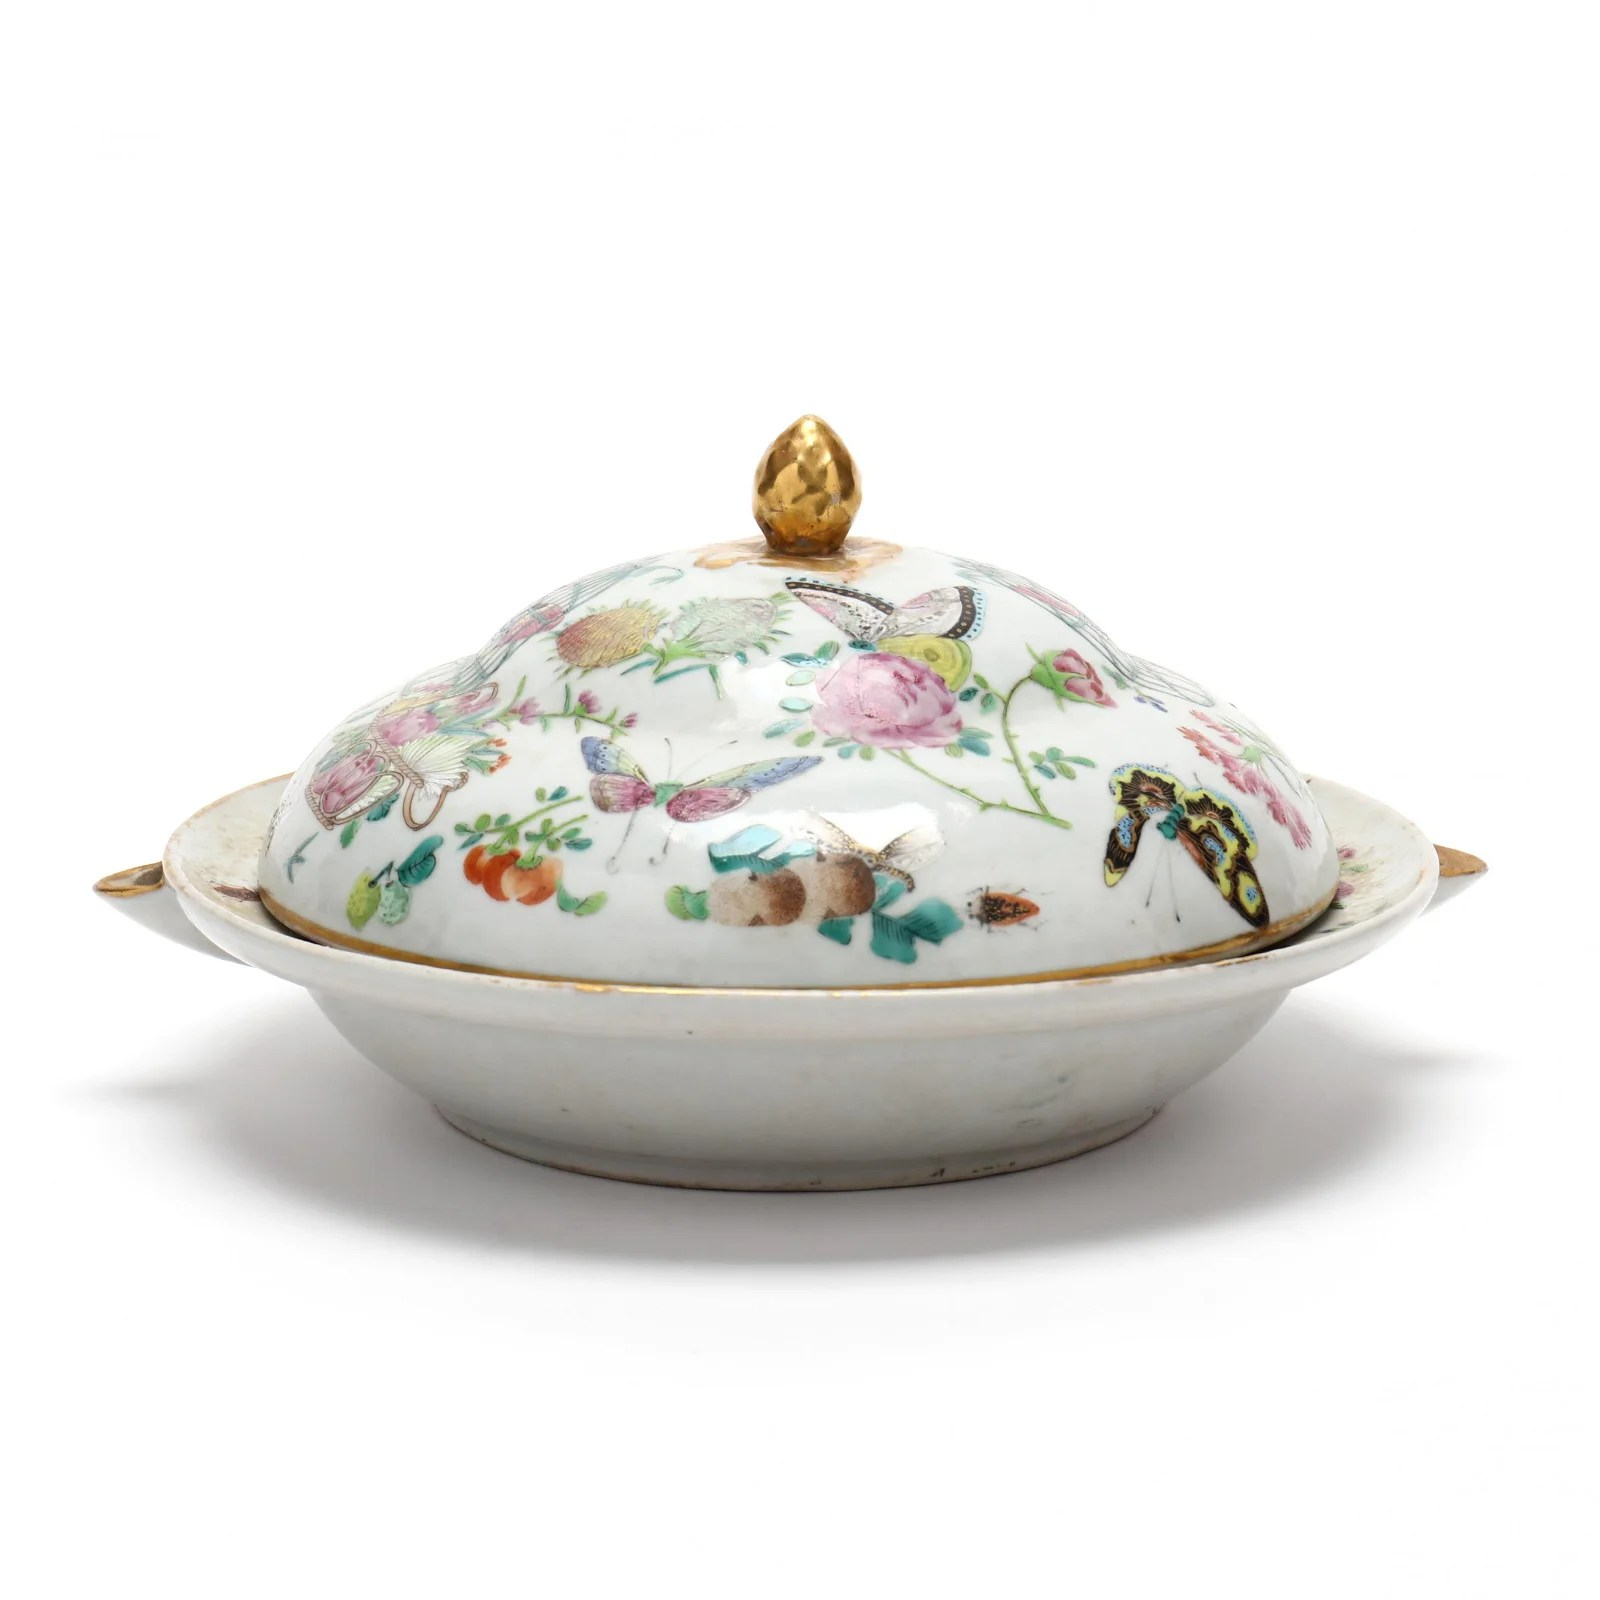 A Chinese Famille Rose Porcelain Warming Dish with